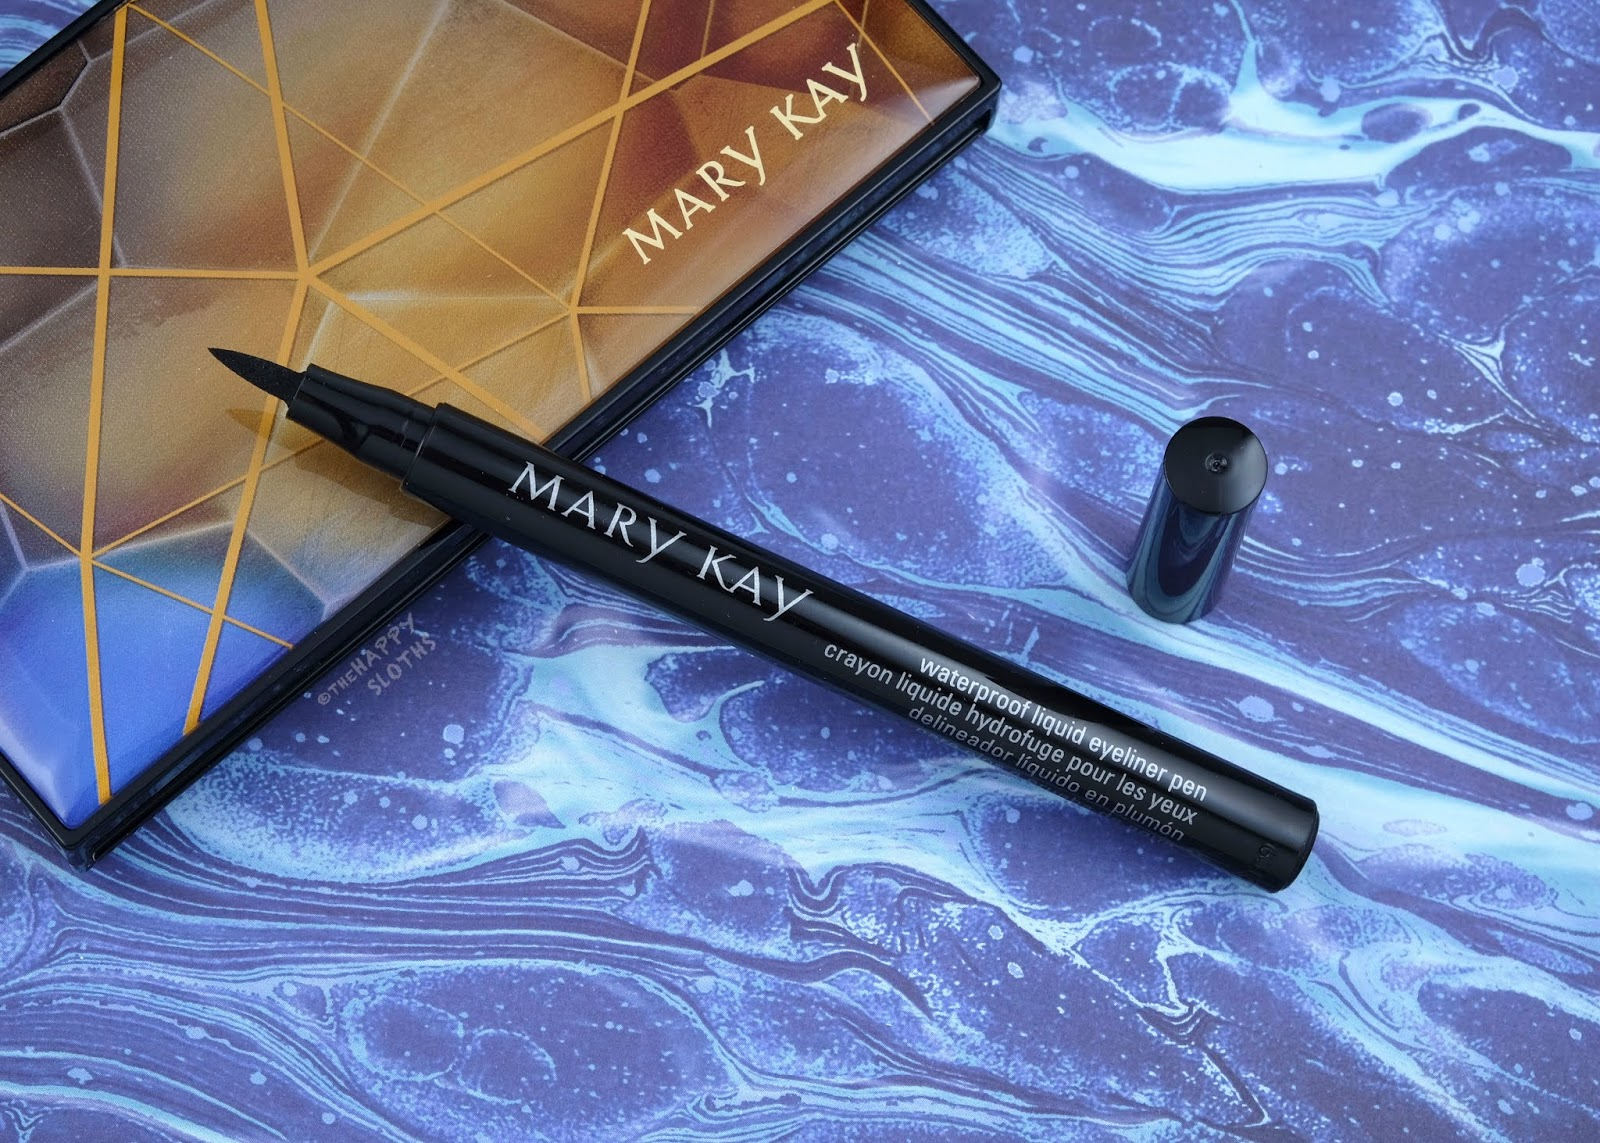 Mary Kay | Spring 2020 Waterproof Liquid Eyeliner: Review and Swatches